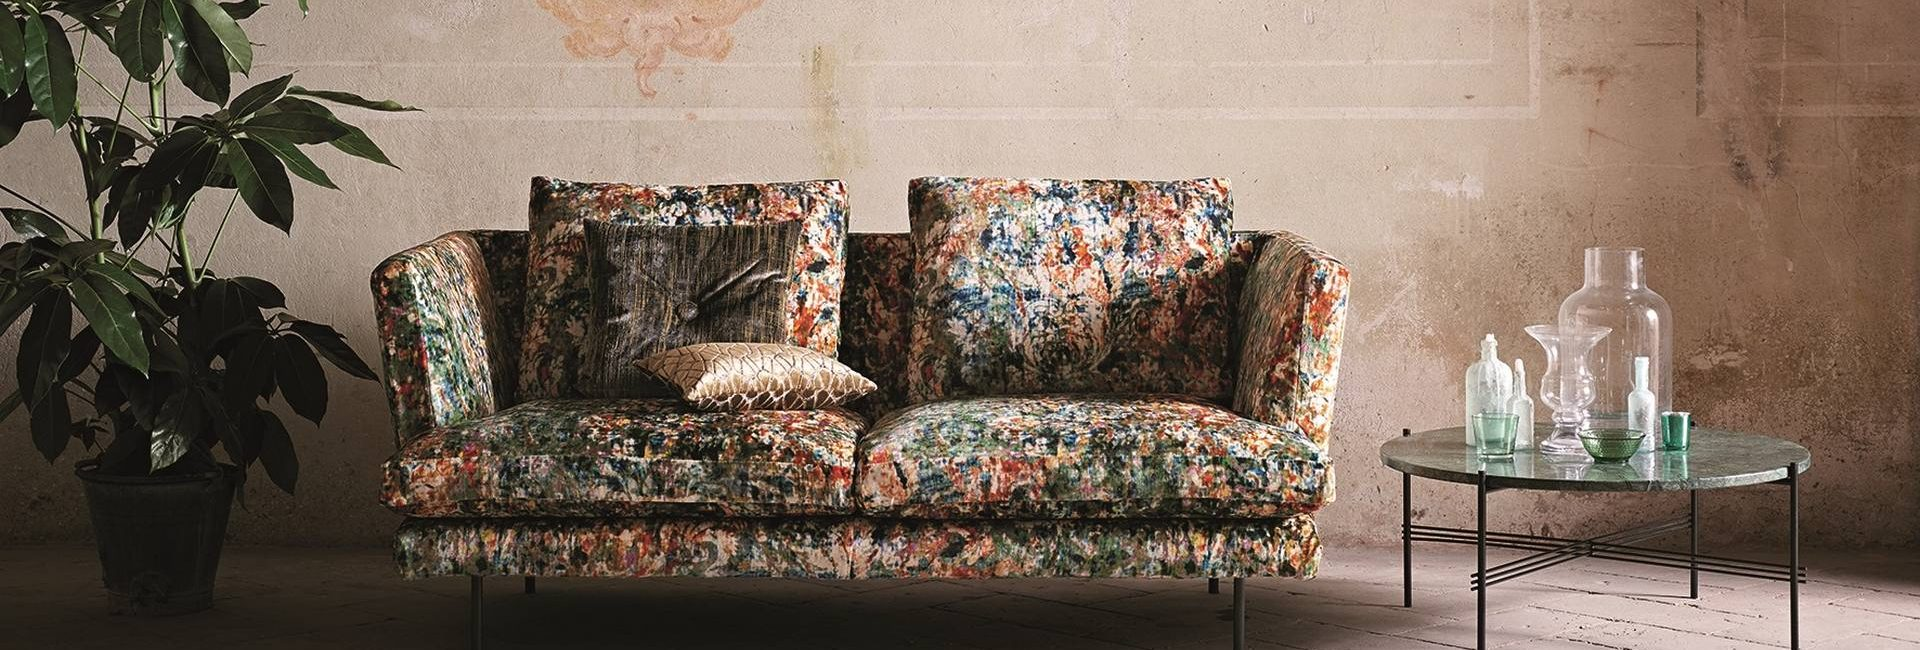 Romo Black Edition Herbaria fabric upholstered onto a sofa - available from Fabric Gallery and Interiors in Dunnington, York